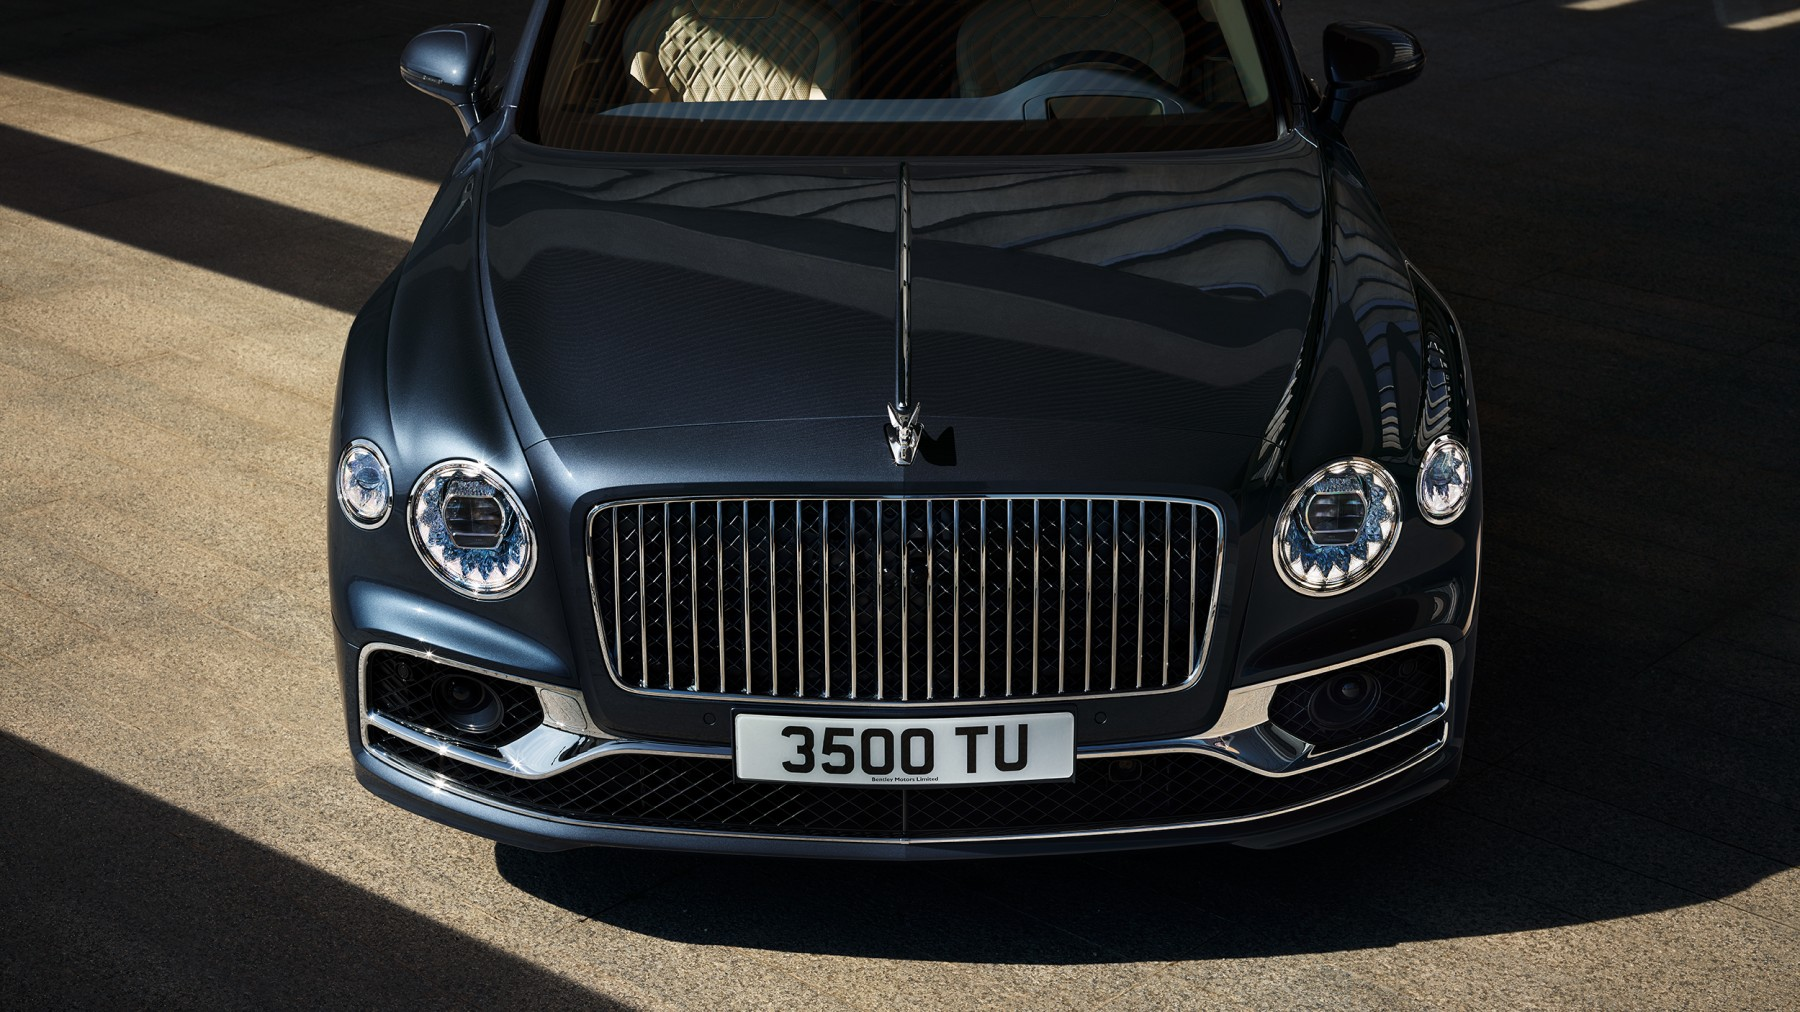 the-new-bentley-flying-spur-1-by-marc-trautmann